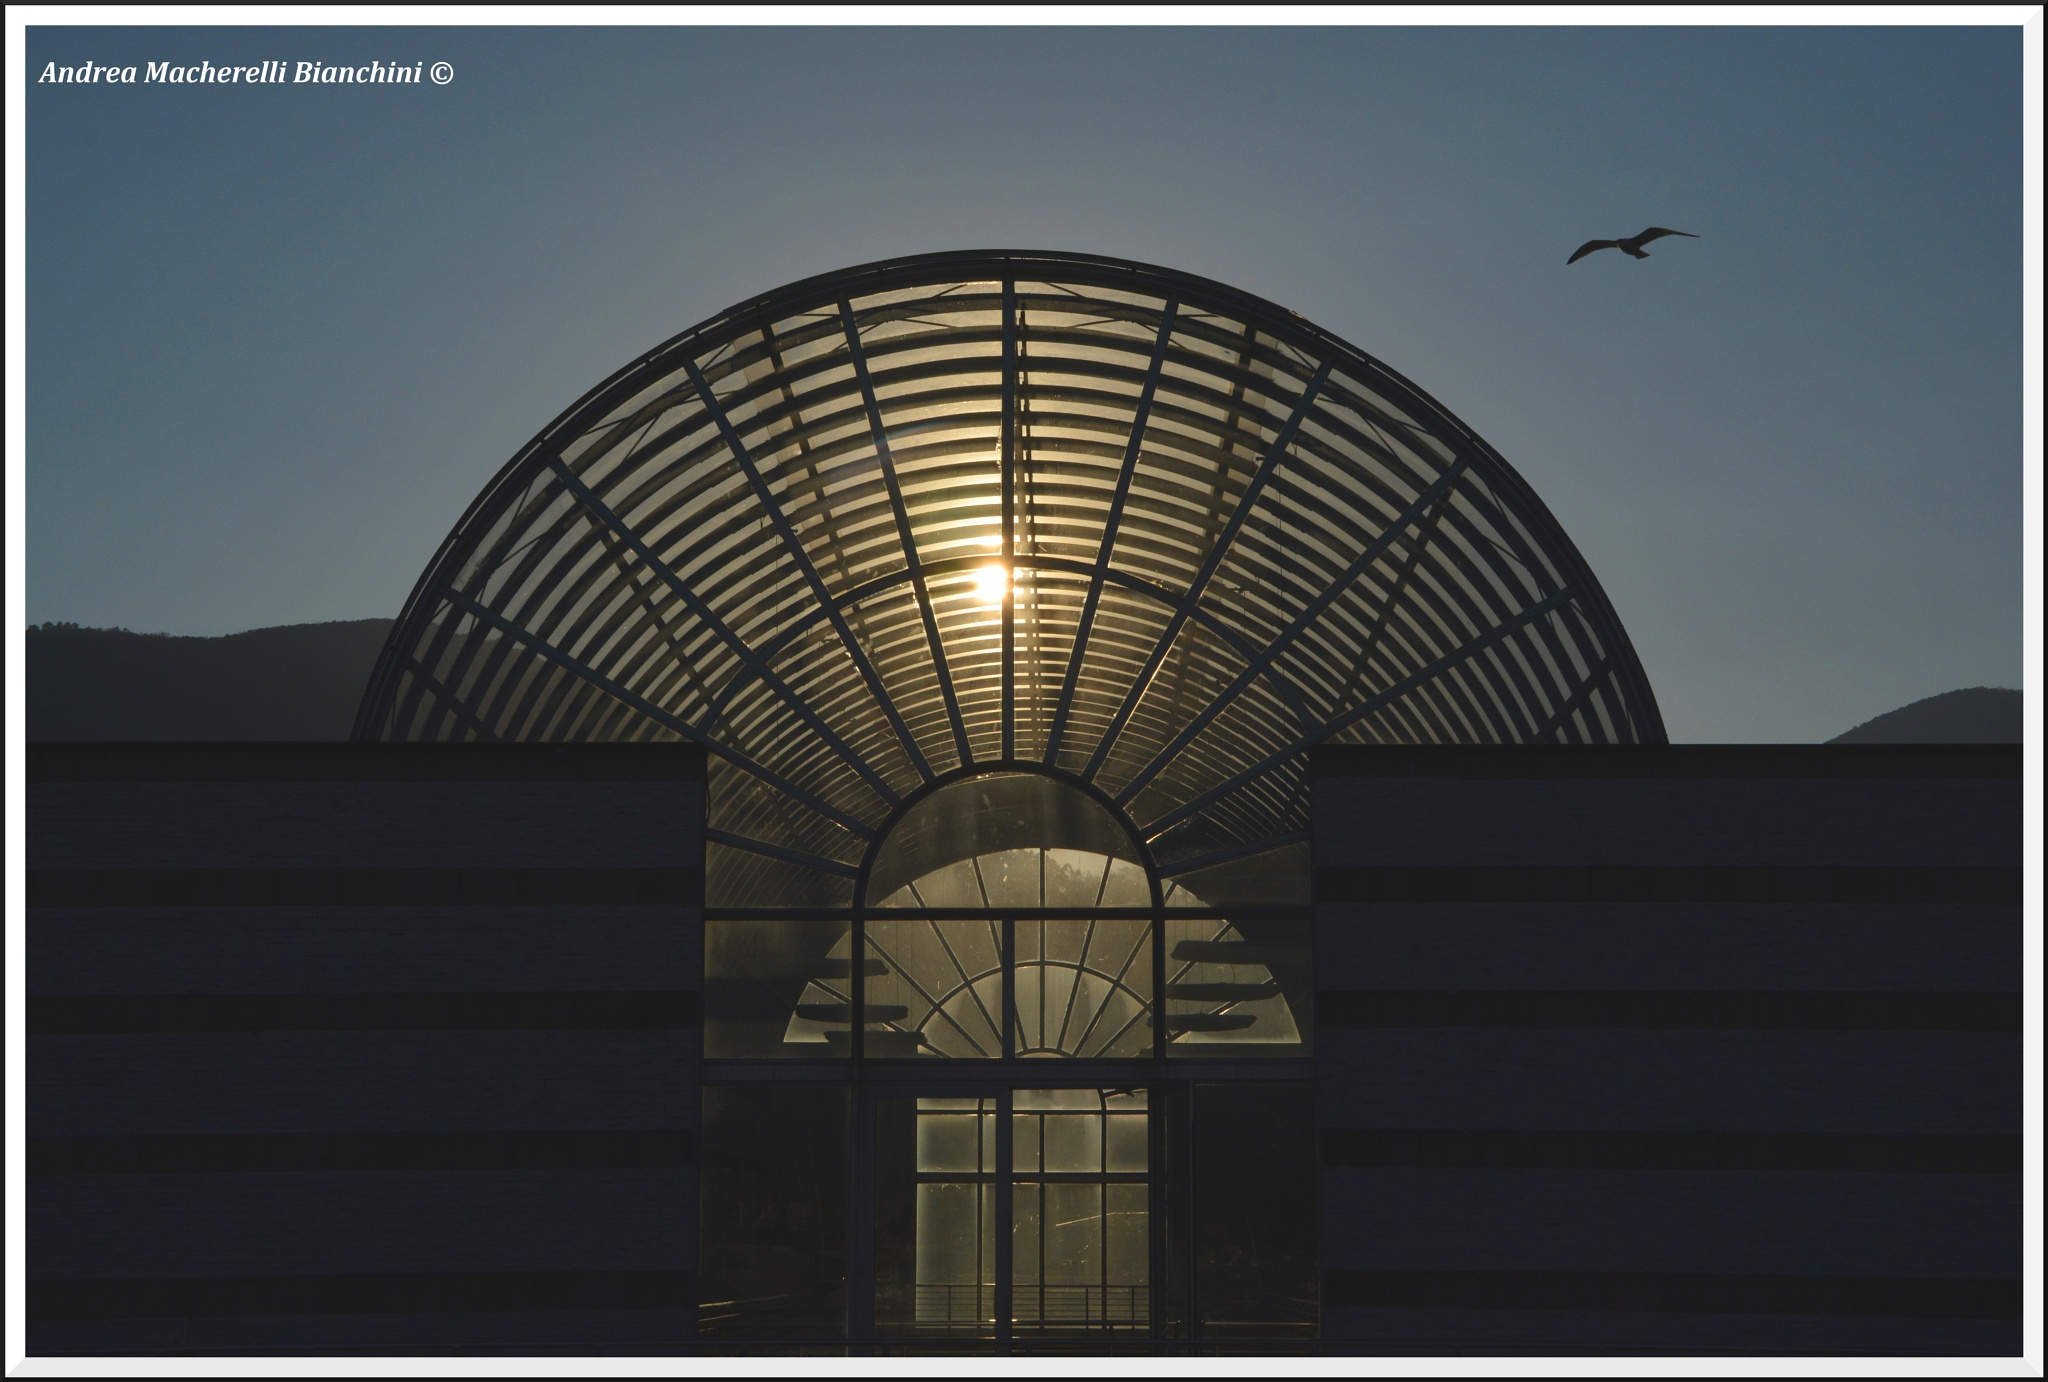 Sunset behind the glass gallery by Andrea Macherelli Bianchini